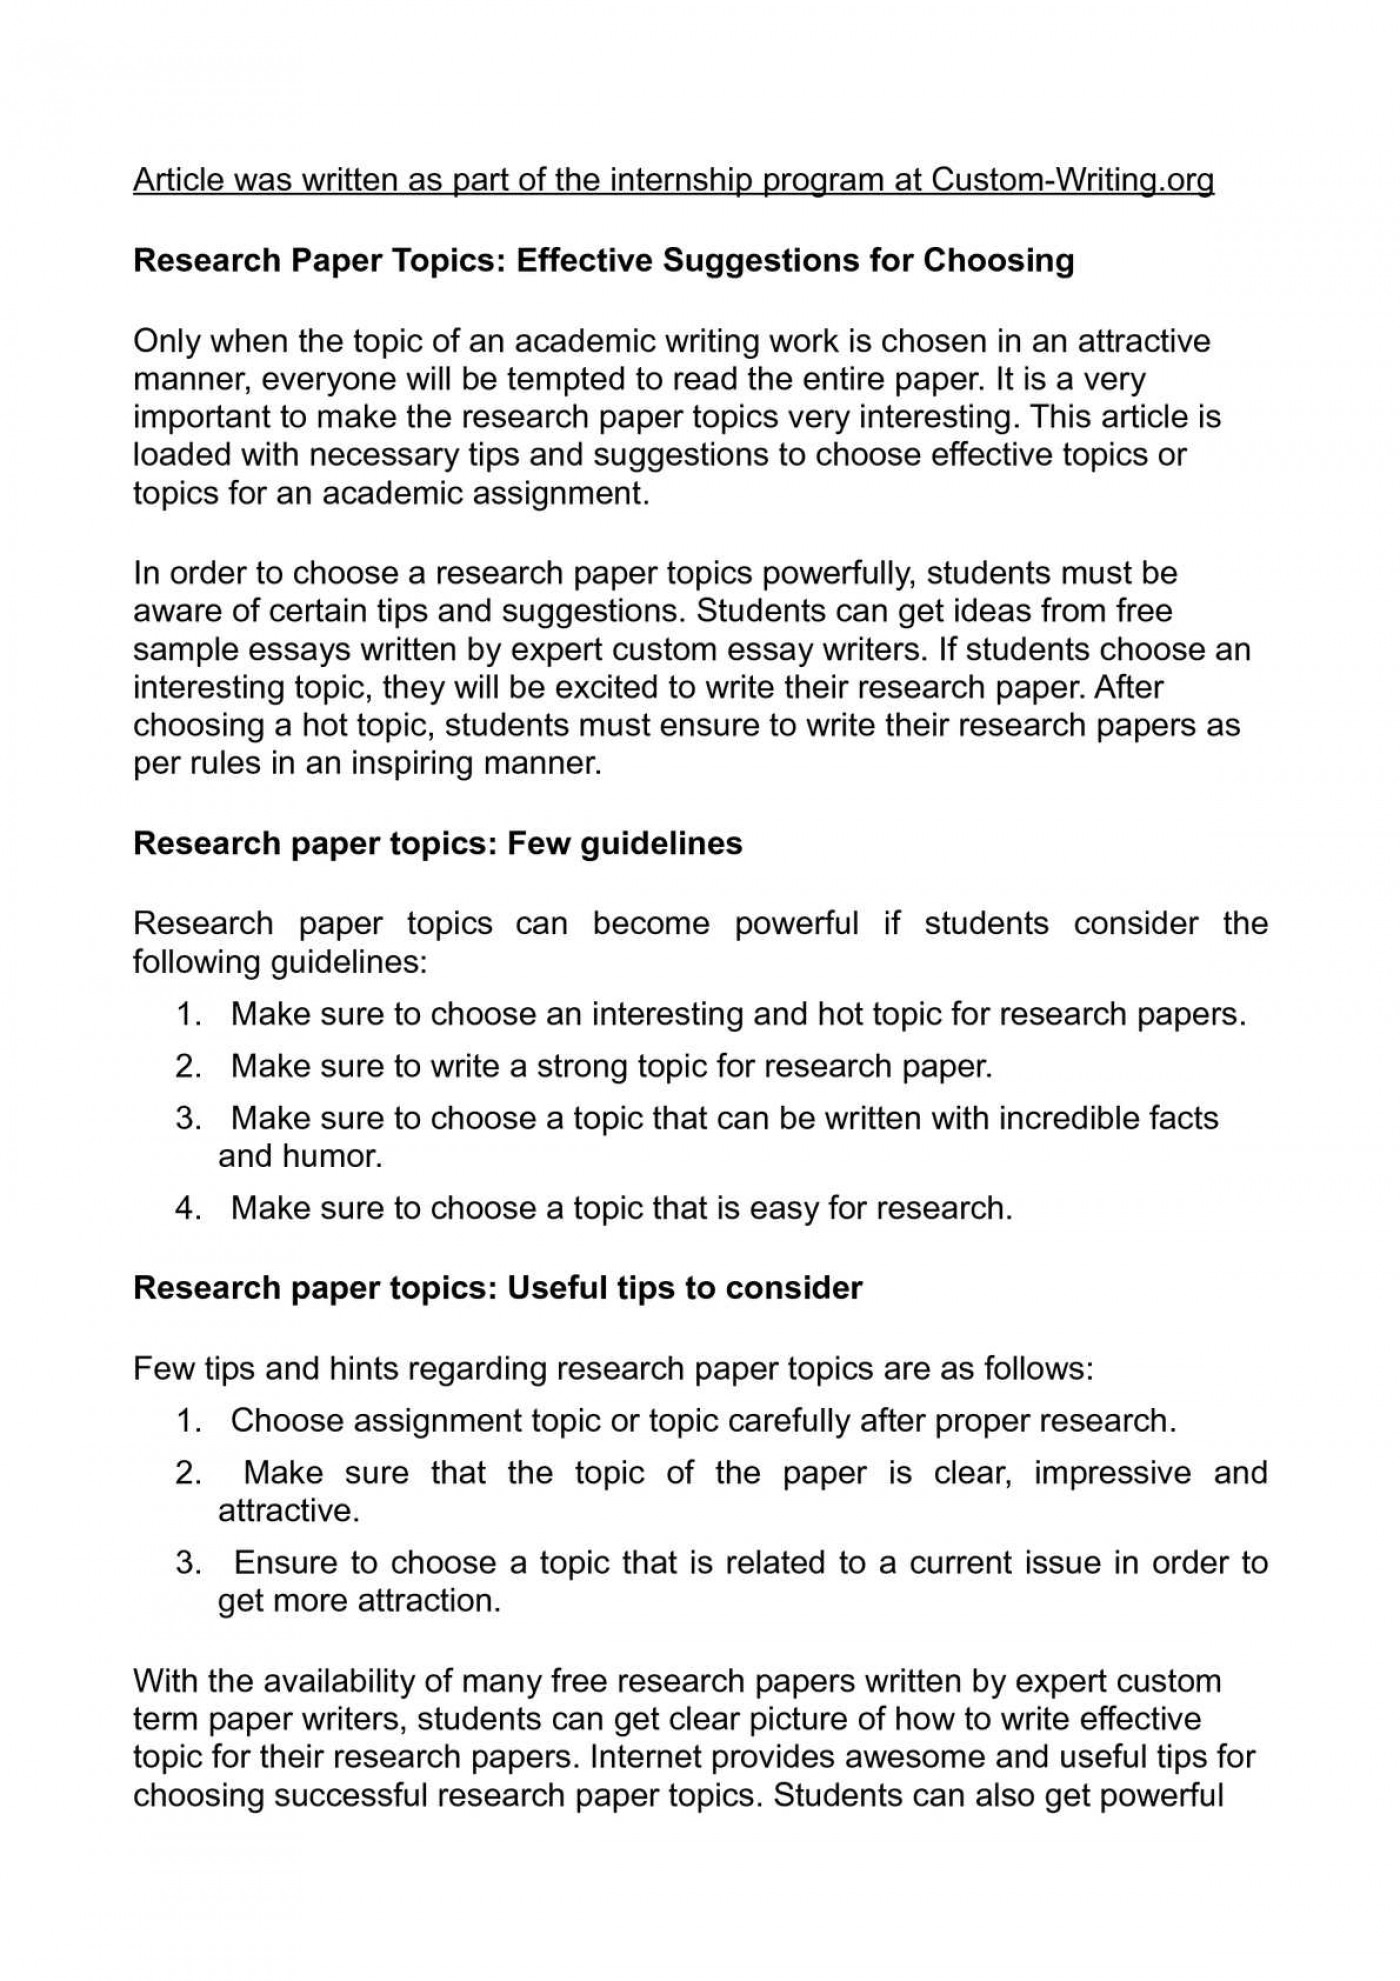 016 Easy Research Paper Topics Fantastic To Write About For Computer Science 1400